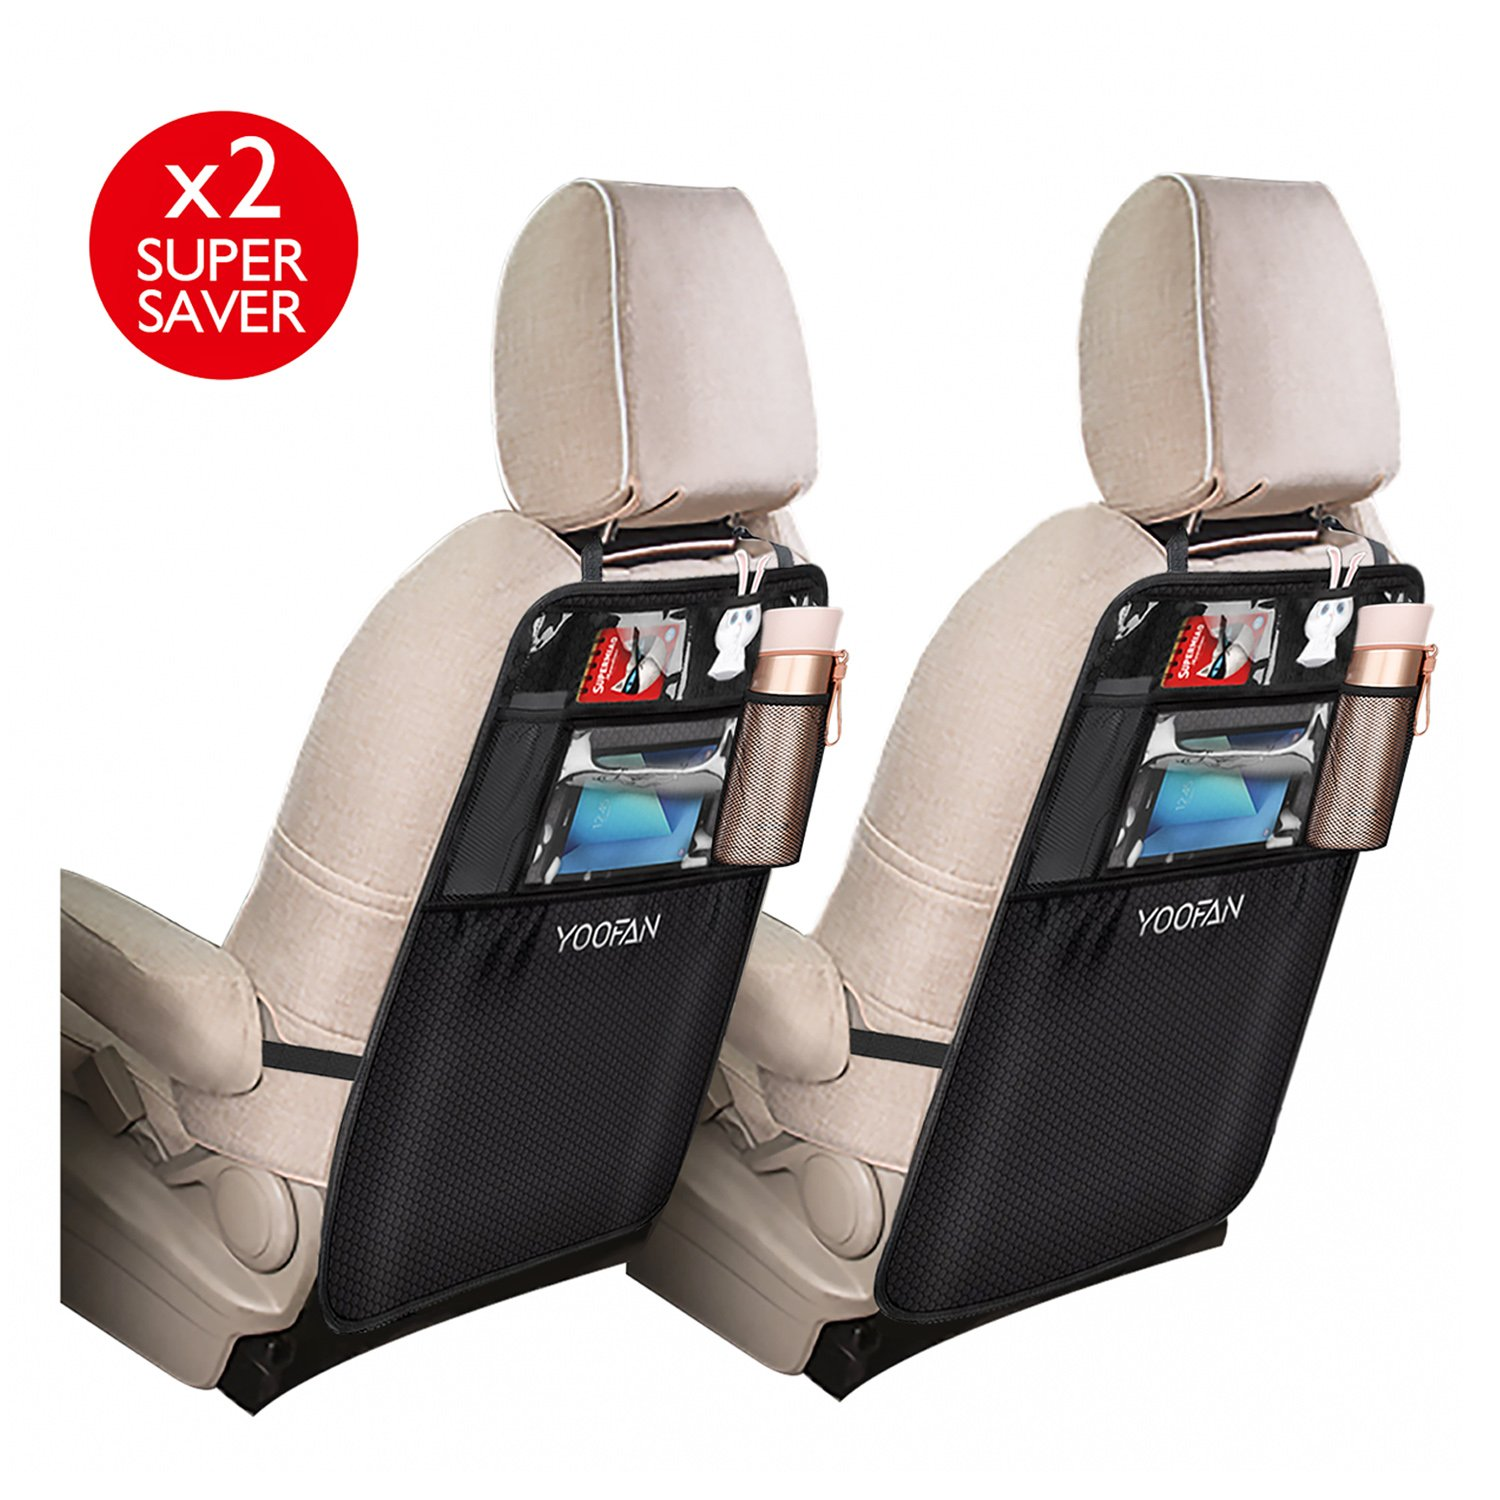 2 Pack Kick Mats Car Back Seat Protector , Organizer Pockets, Waterproof Seat Back Cover with iPad / Tablet Holder by YOOFAN